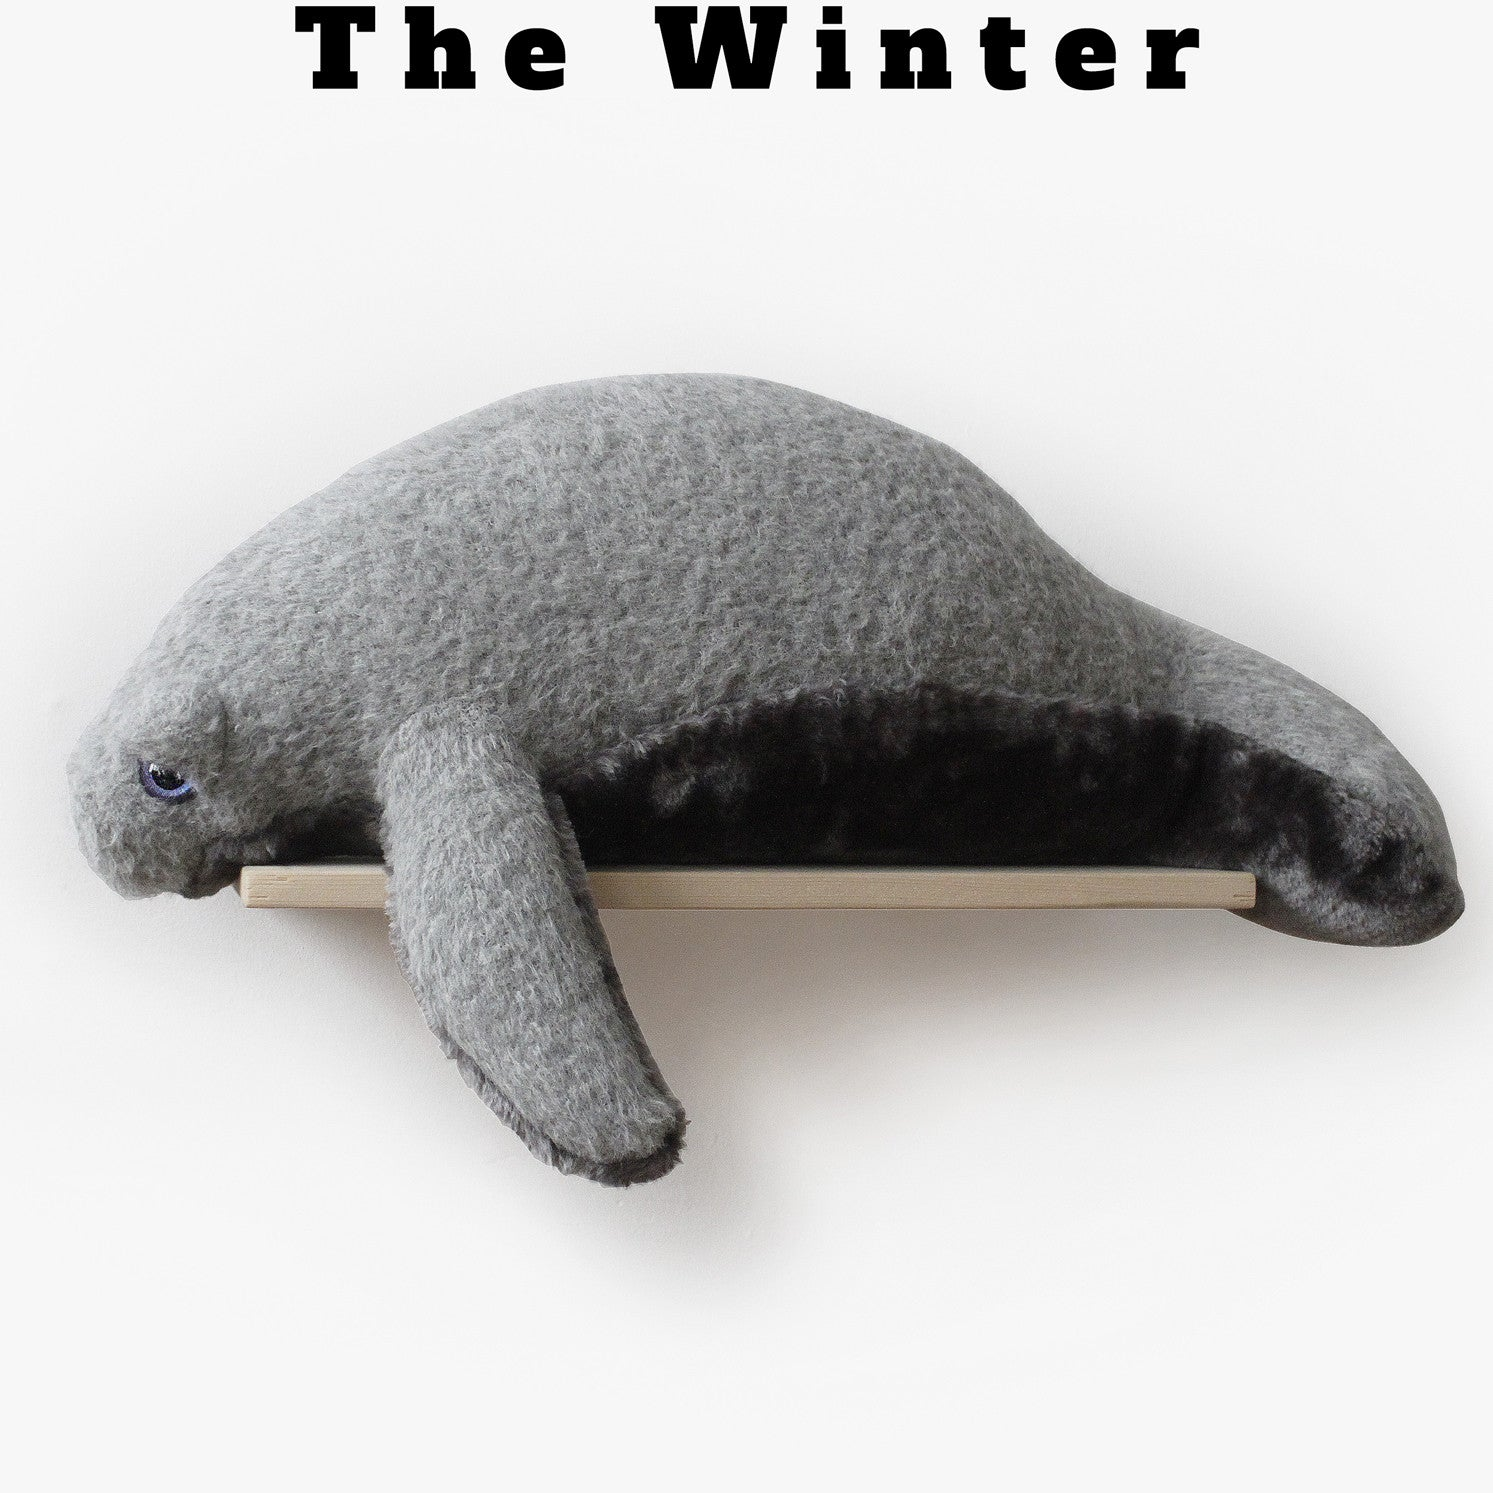 Winter Manatee - www.bigstuffed.com